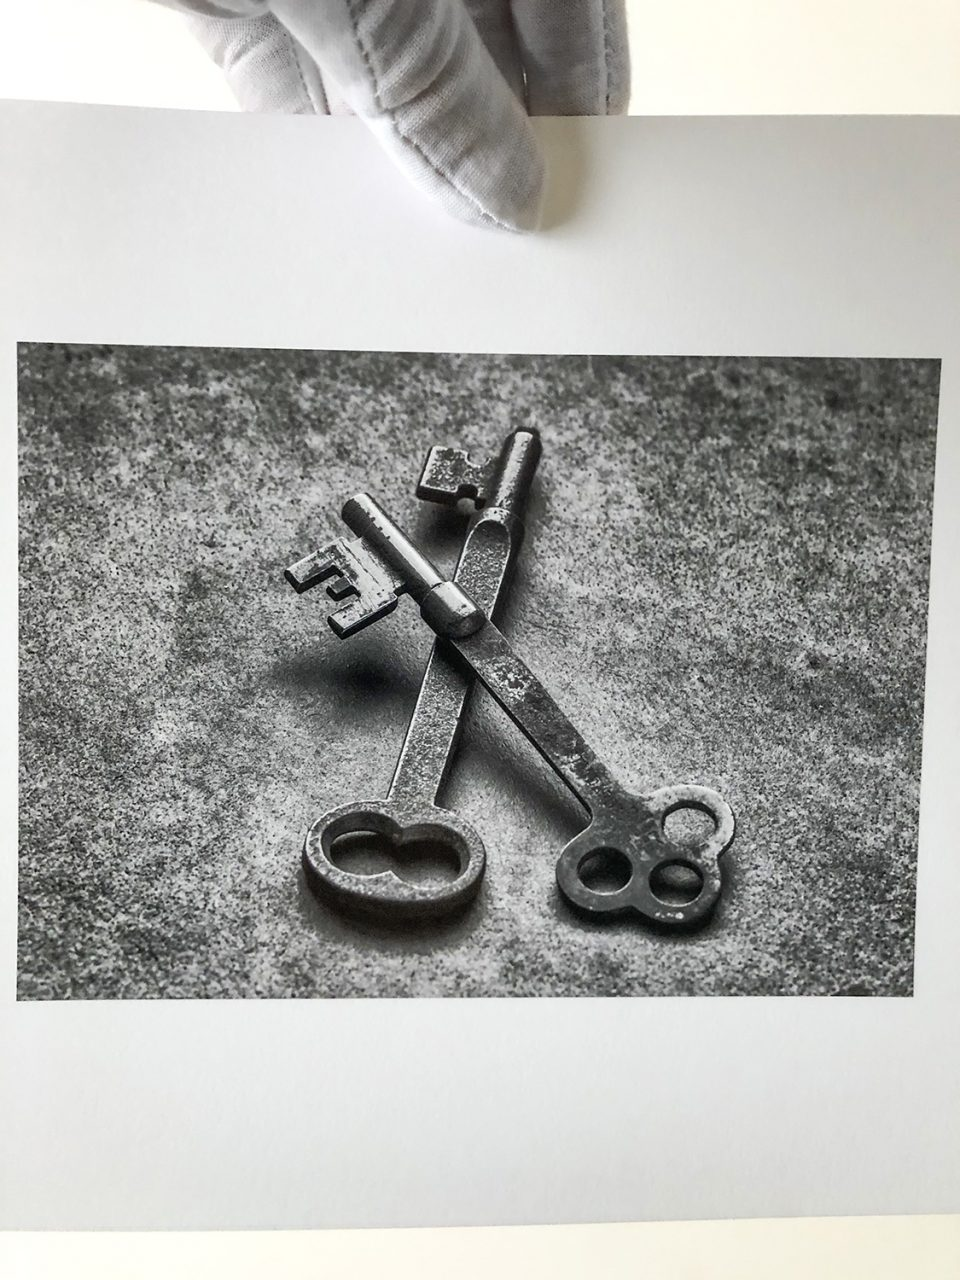 Fine art print of antique keys printed 5 x 7-inches on baryta surface fine art paper.